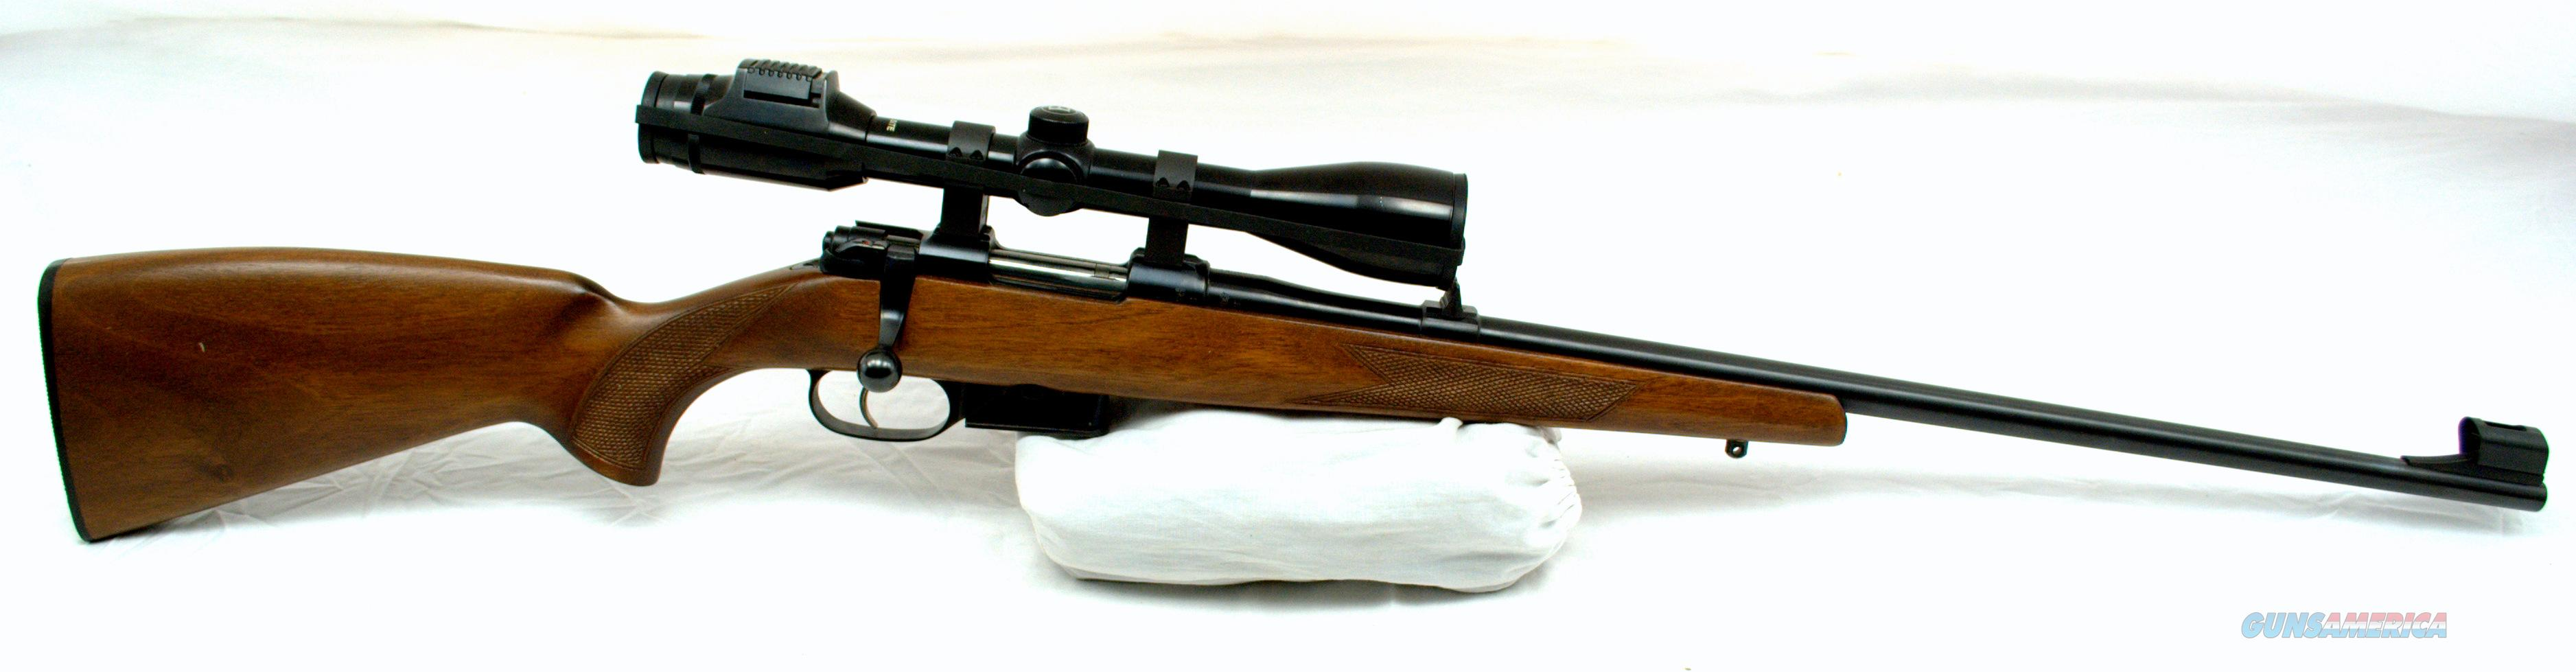 CZ-USA 527 BOLT ACTION  Guns > Rifles > CZ Rifles